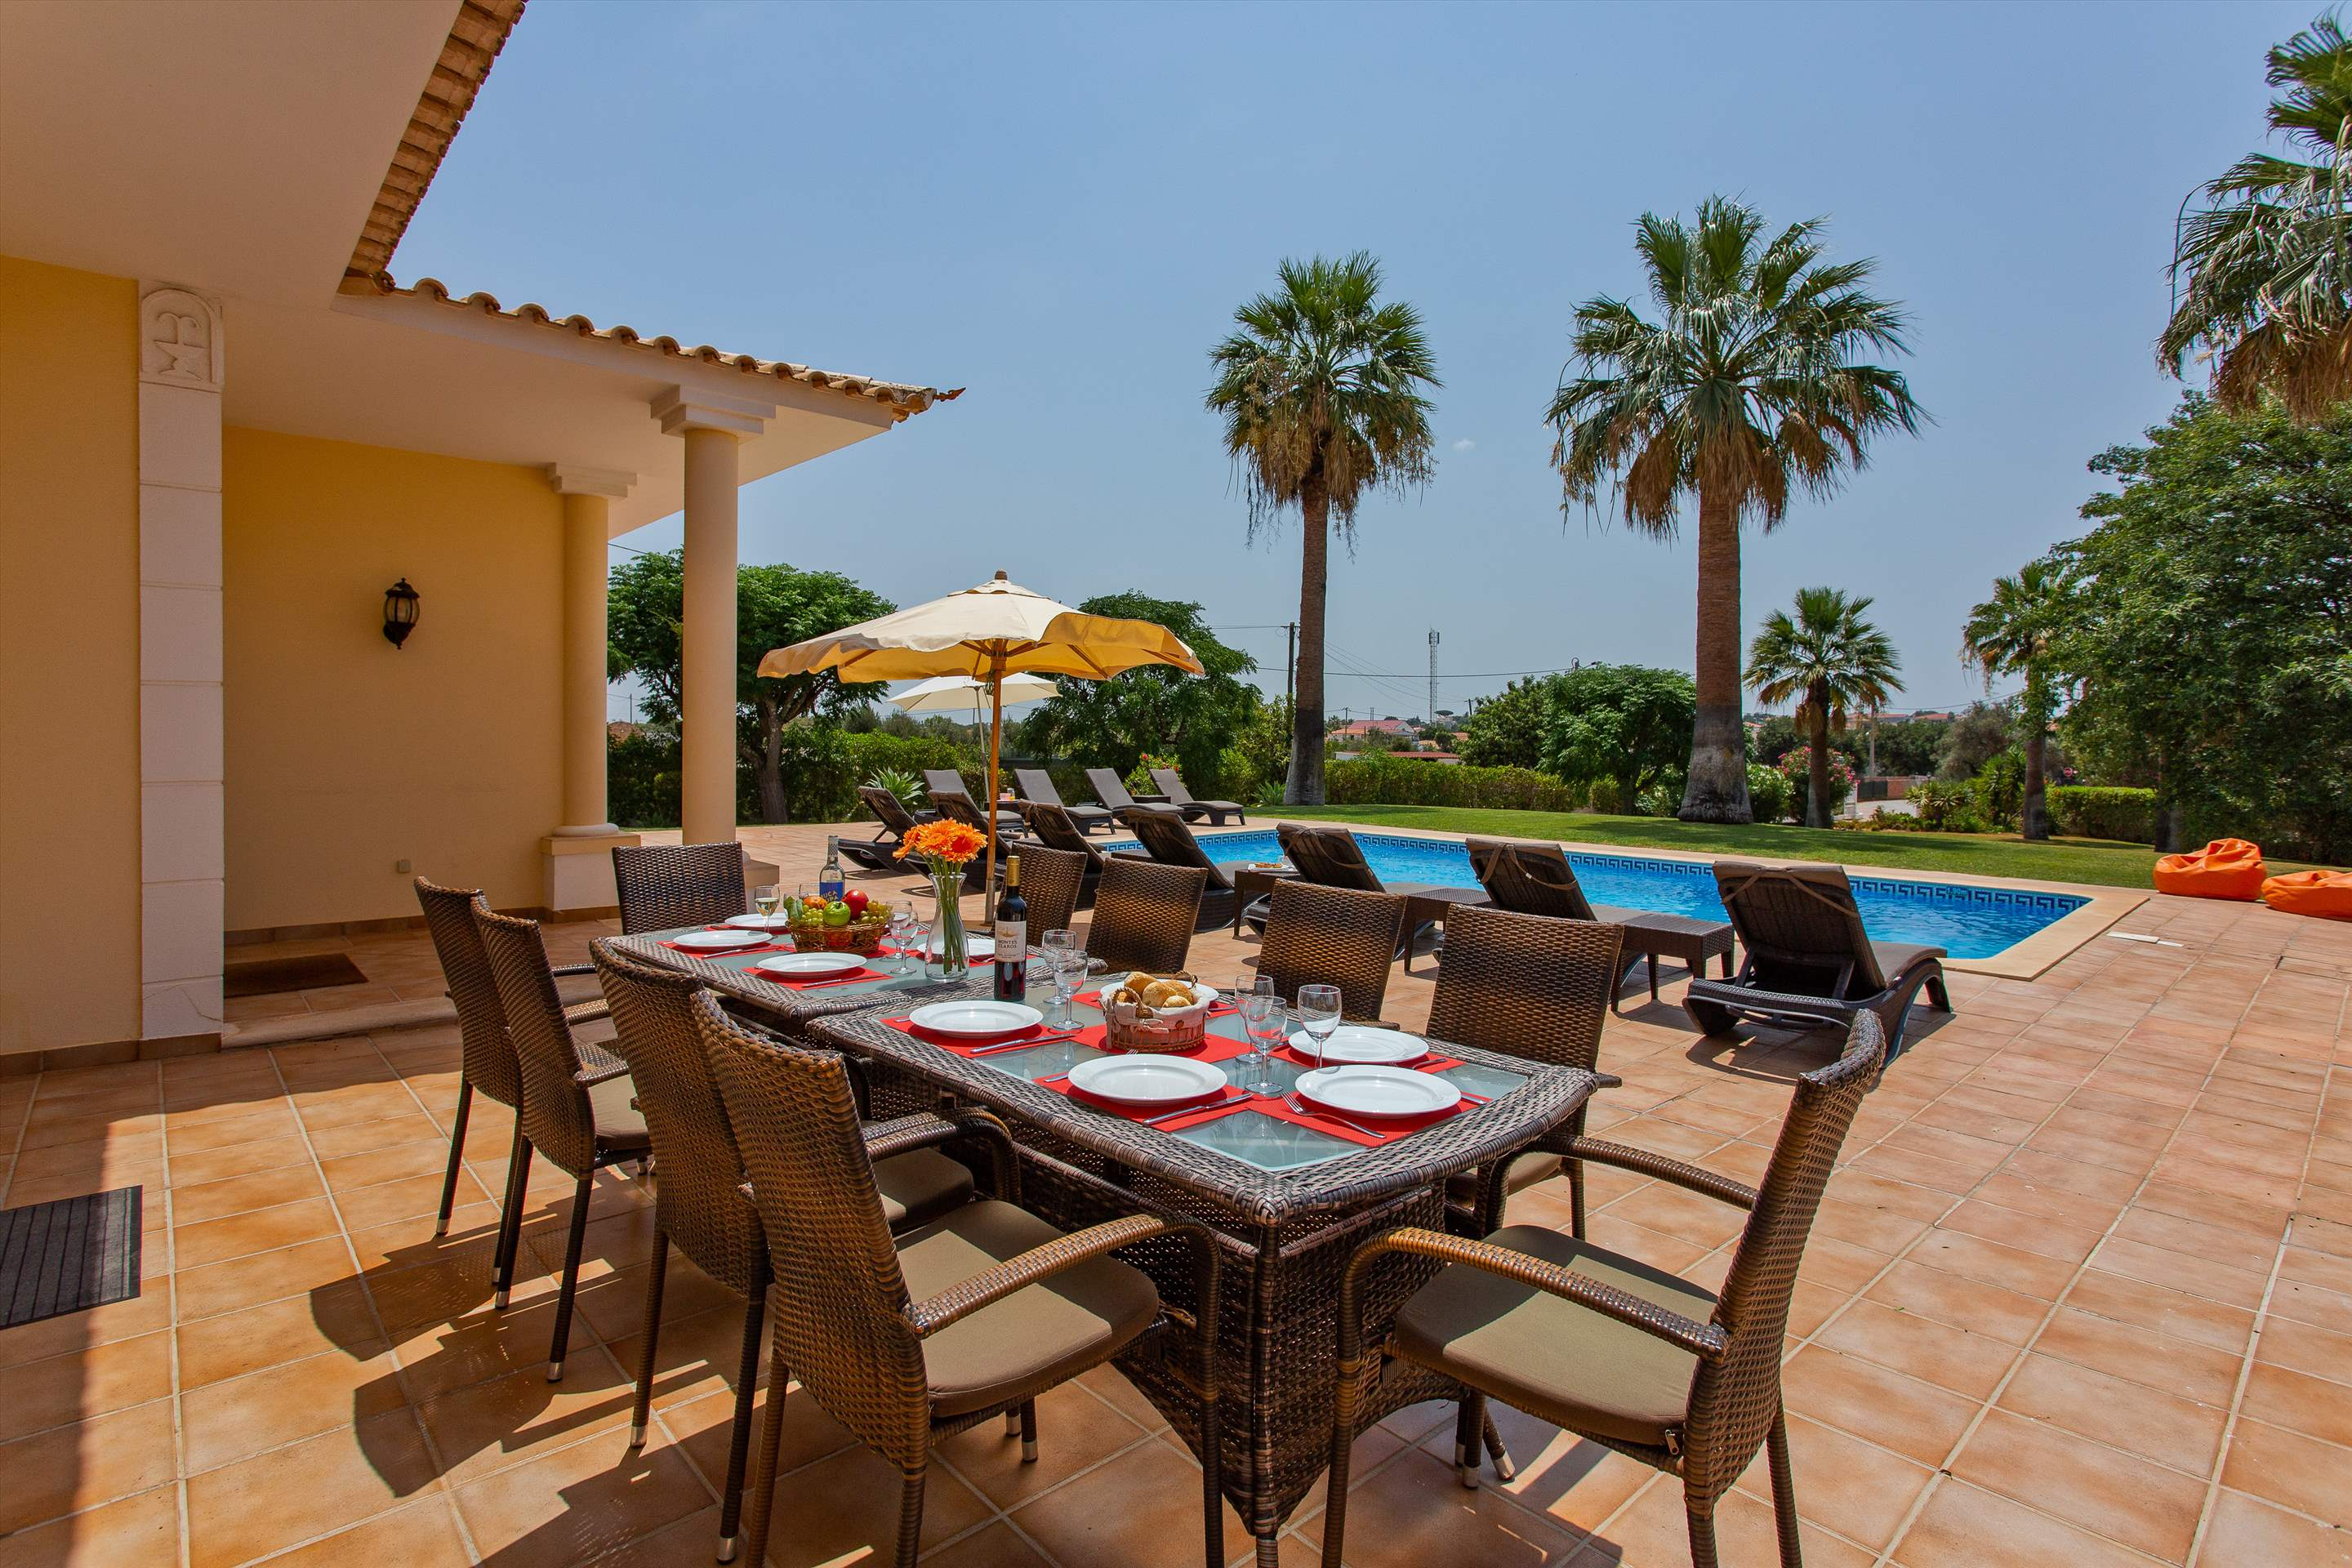 Quinta do Bruno, Eight Bedroom Rate including annexes, 8 bedroom villa in Vilamoura Area, Algarve Photo #3